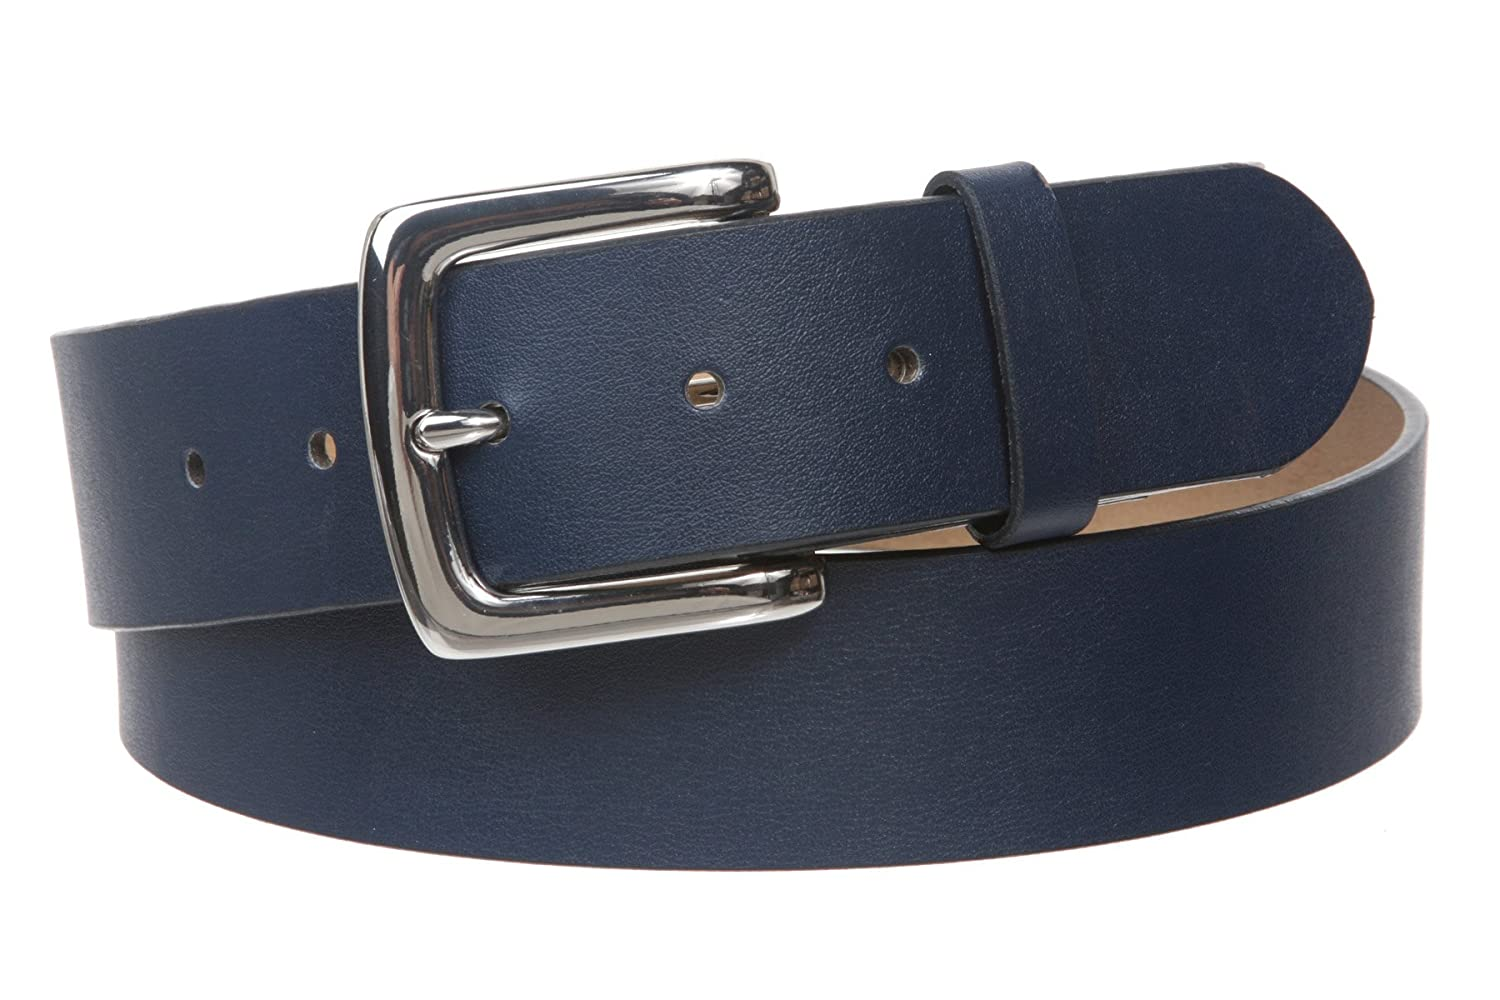 1 1/2 (38mm) Square Nickel Free Snap On Plain Non-Leather Jean Belt, Black | M/L - 34~36 Beltiscool 803801:0101:A005